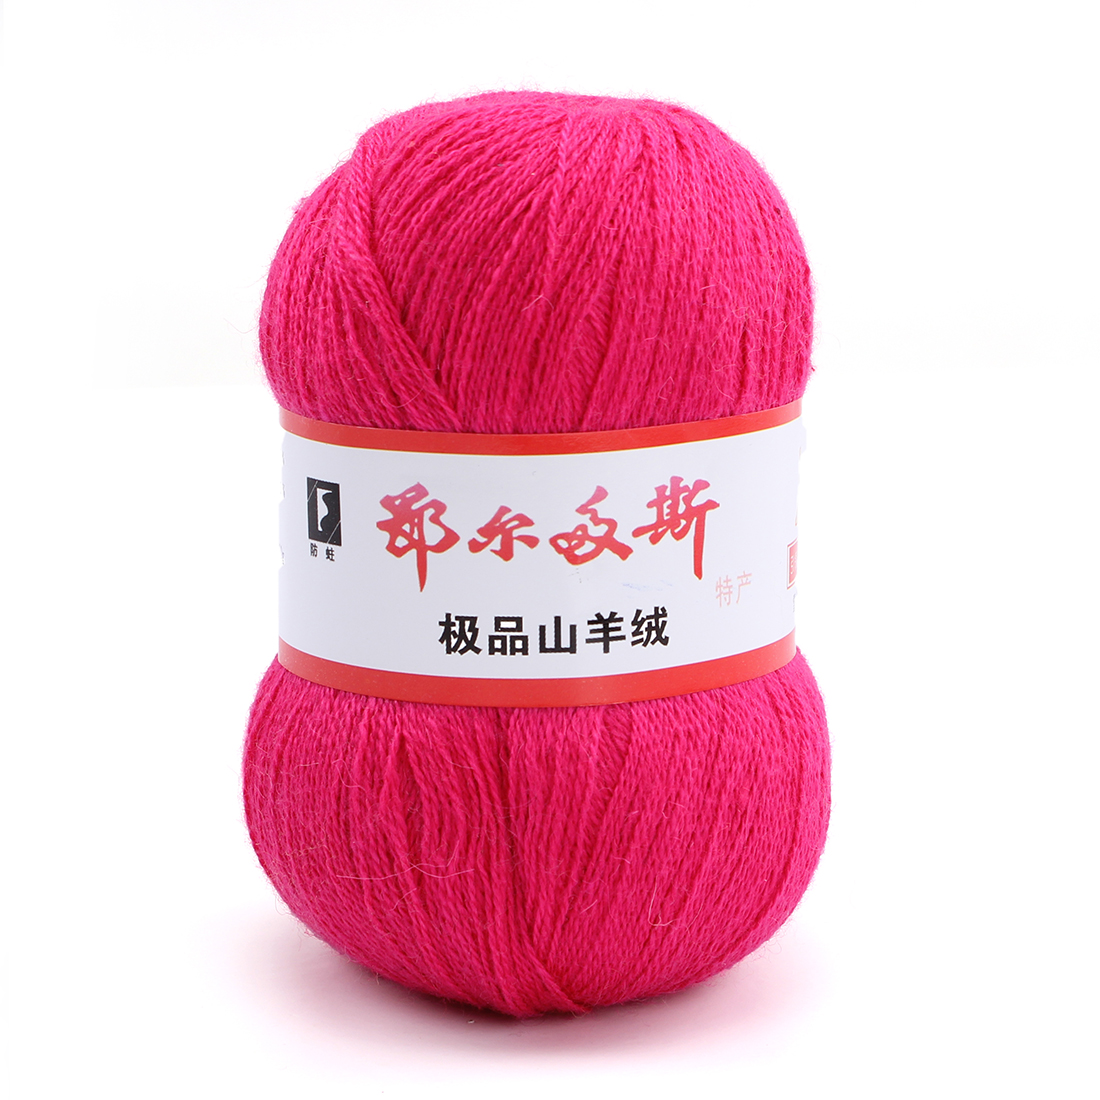 Cashmere Knitting Yarn : 100% Cashmere Soft Knitting Weaving Wool Yarn Crocheting Colourful 50g ...